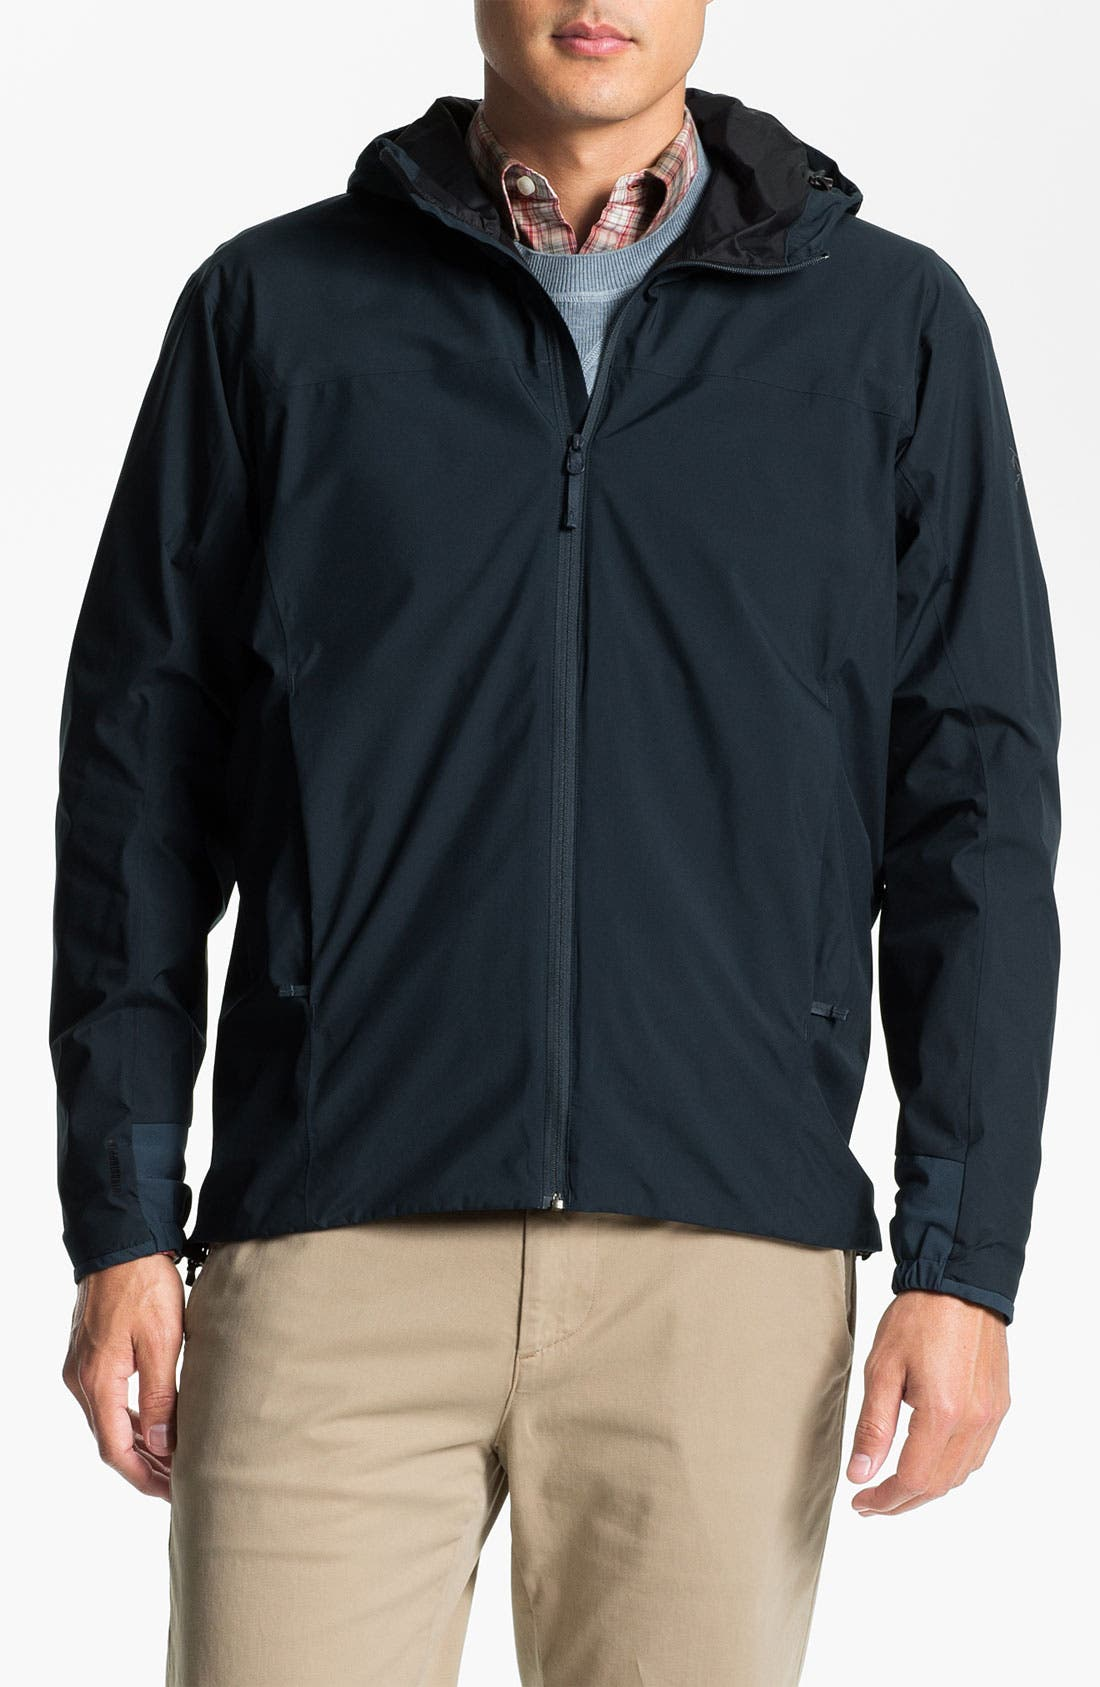 Alternate Image 1 Selected - Arc'teryx 'Solano' Windstopper® Athletic Fit Jacket